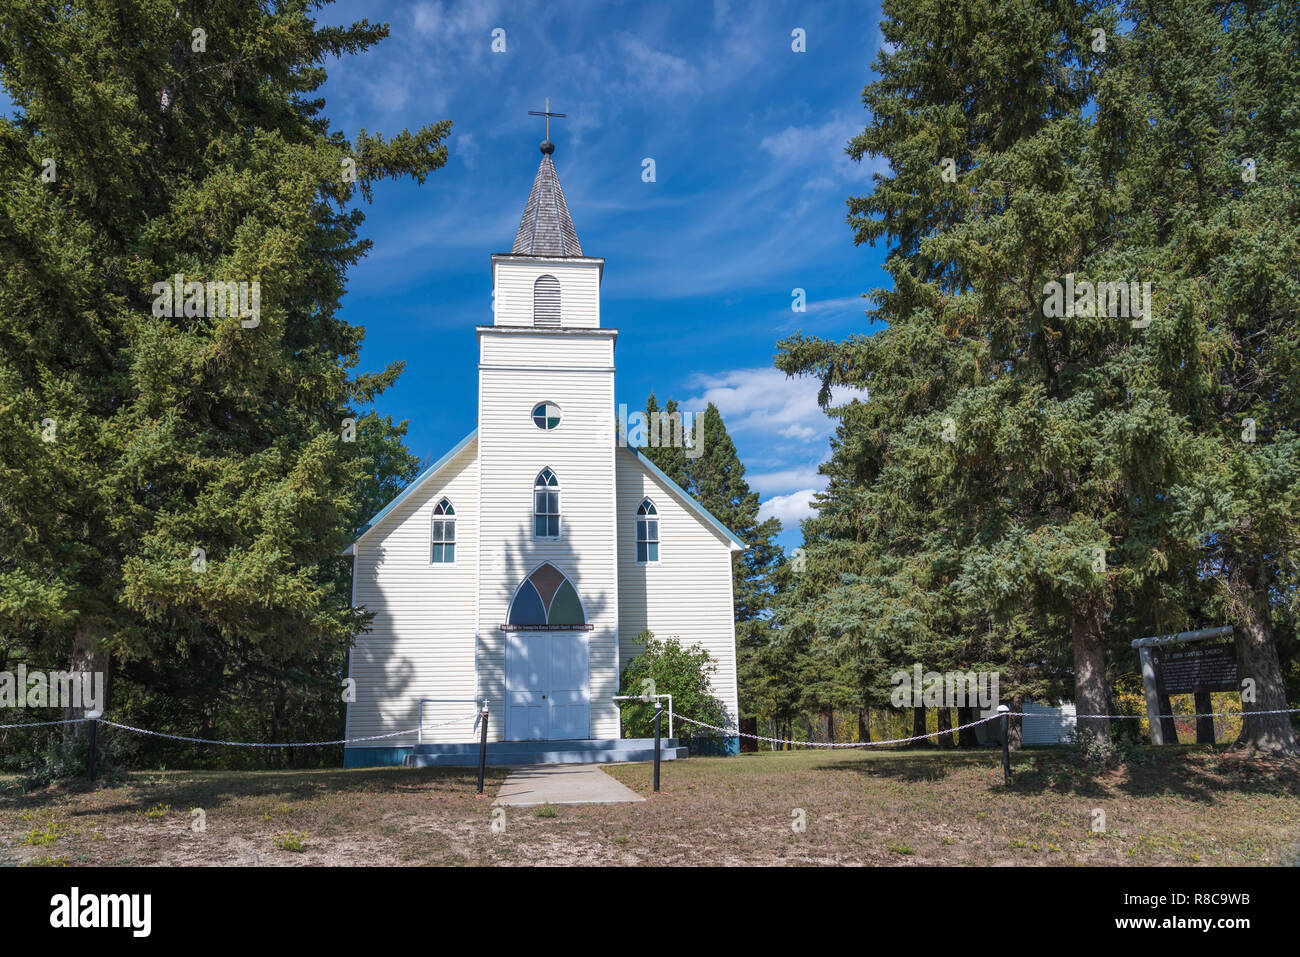 The exterior of the Our Lady of the Asumption Roman Catholic Church near Olha, Manitoba, Canada. - Stock Image